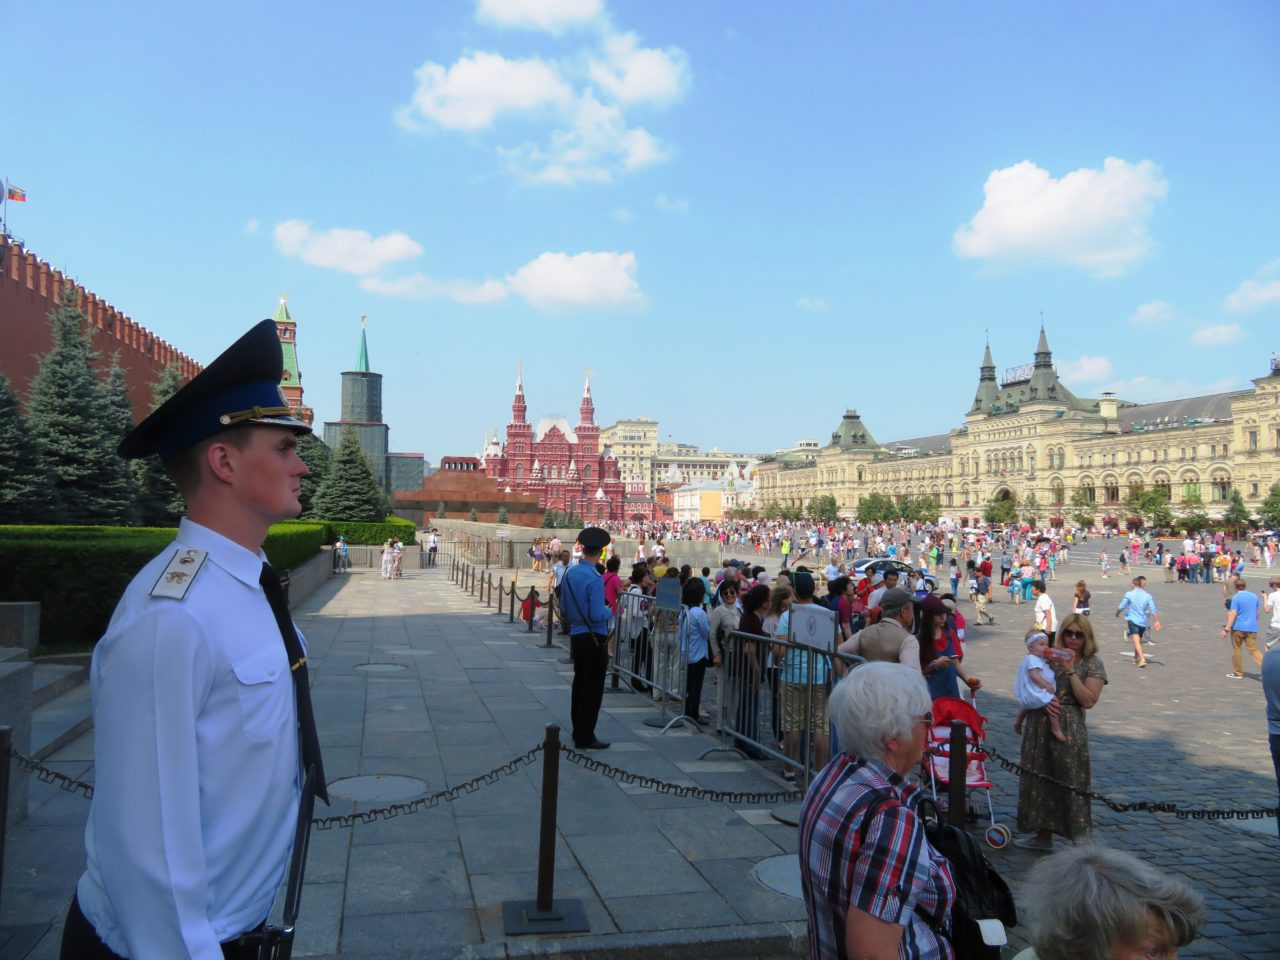 Moscow: Now a World-Class Destination ~ Red Square and the Walls of the Kremlin, Lemin's Mausoleum, State History Museum of Russia and GUM department store